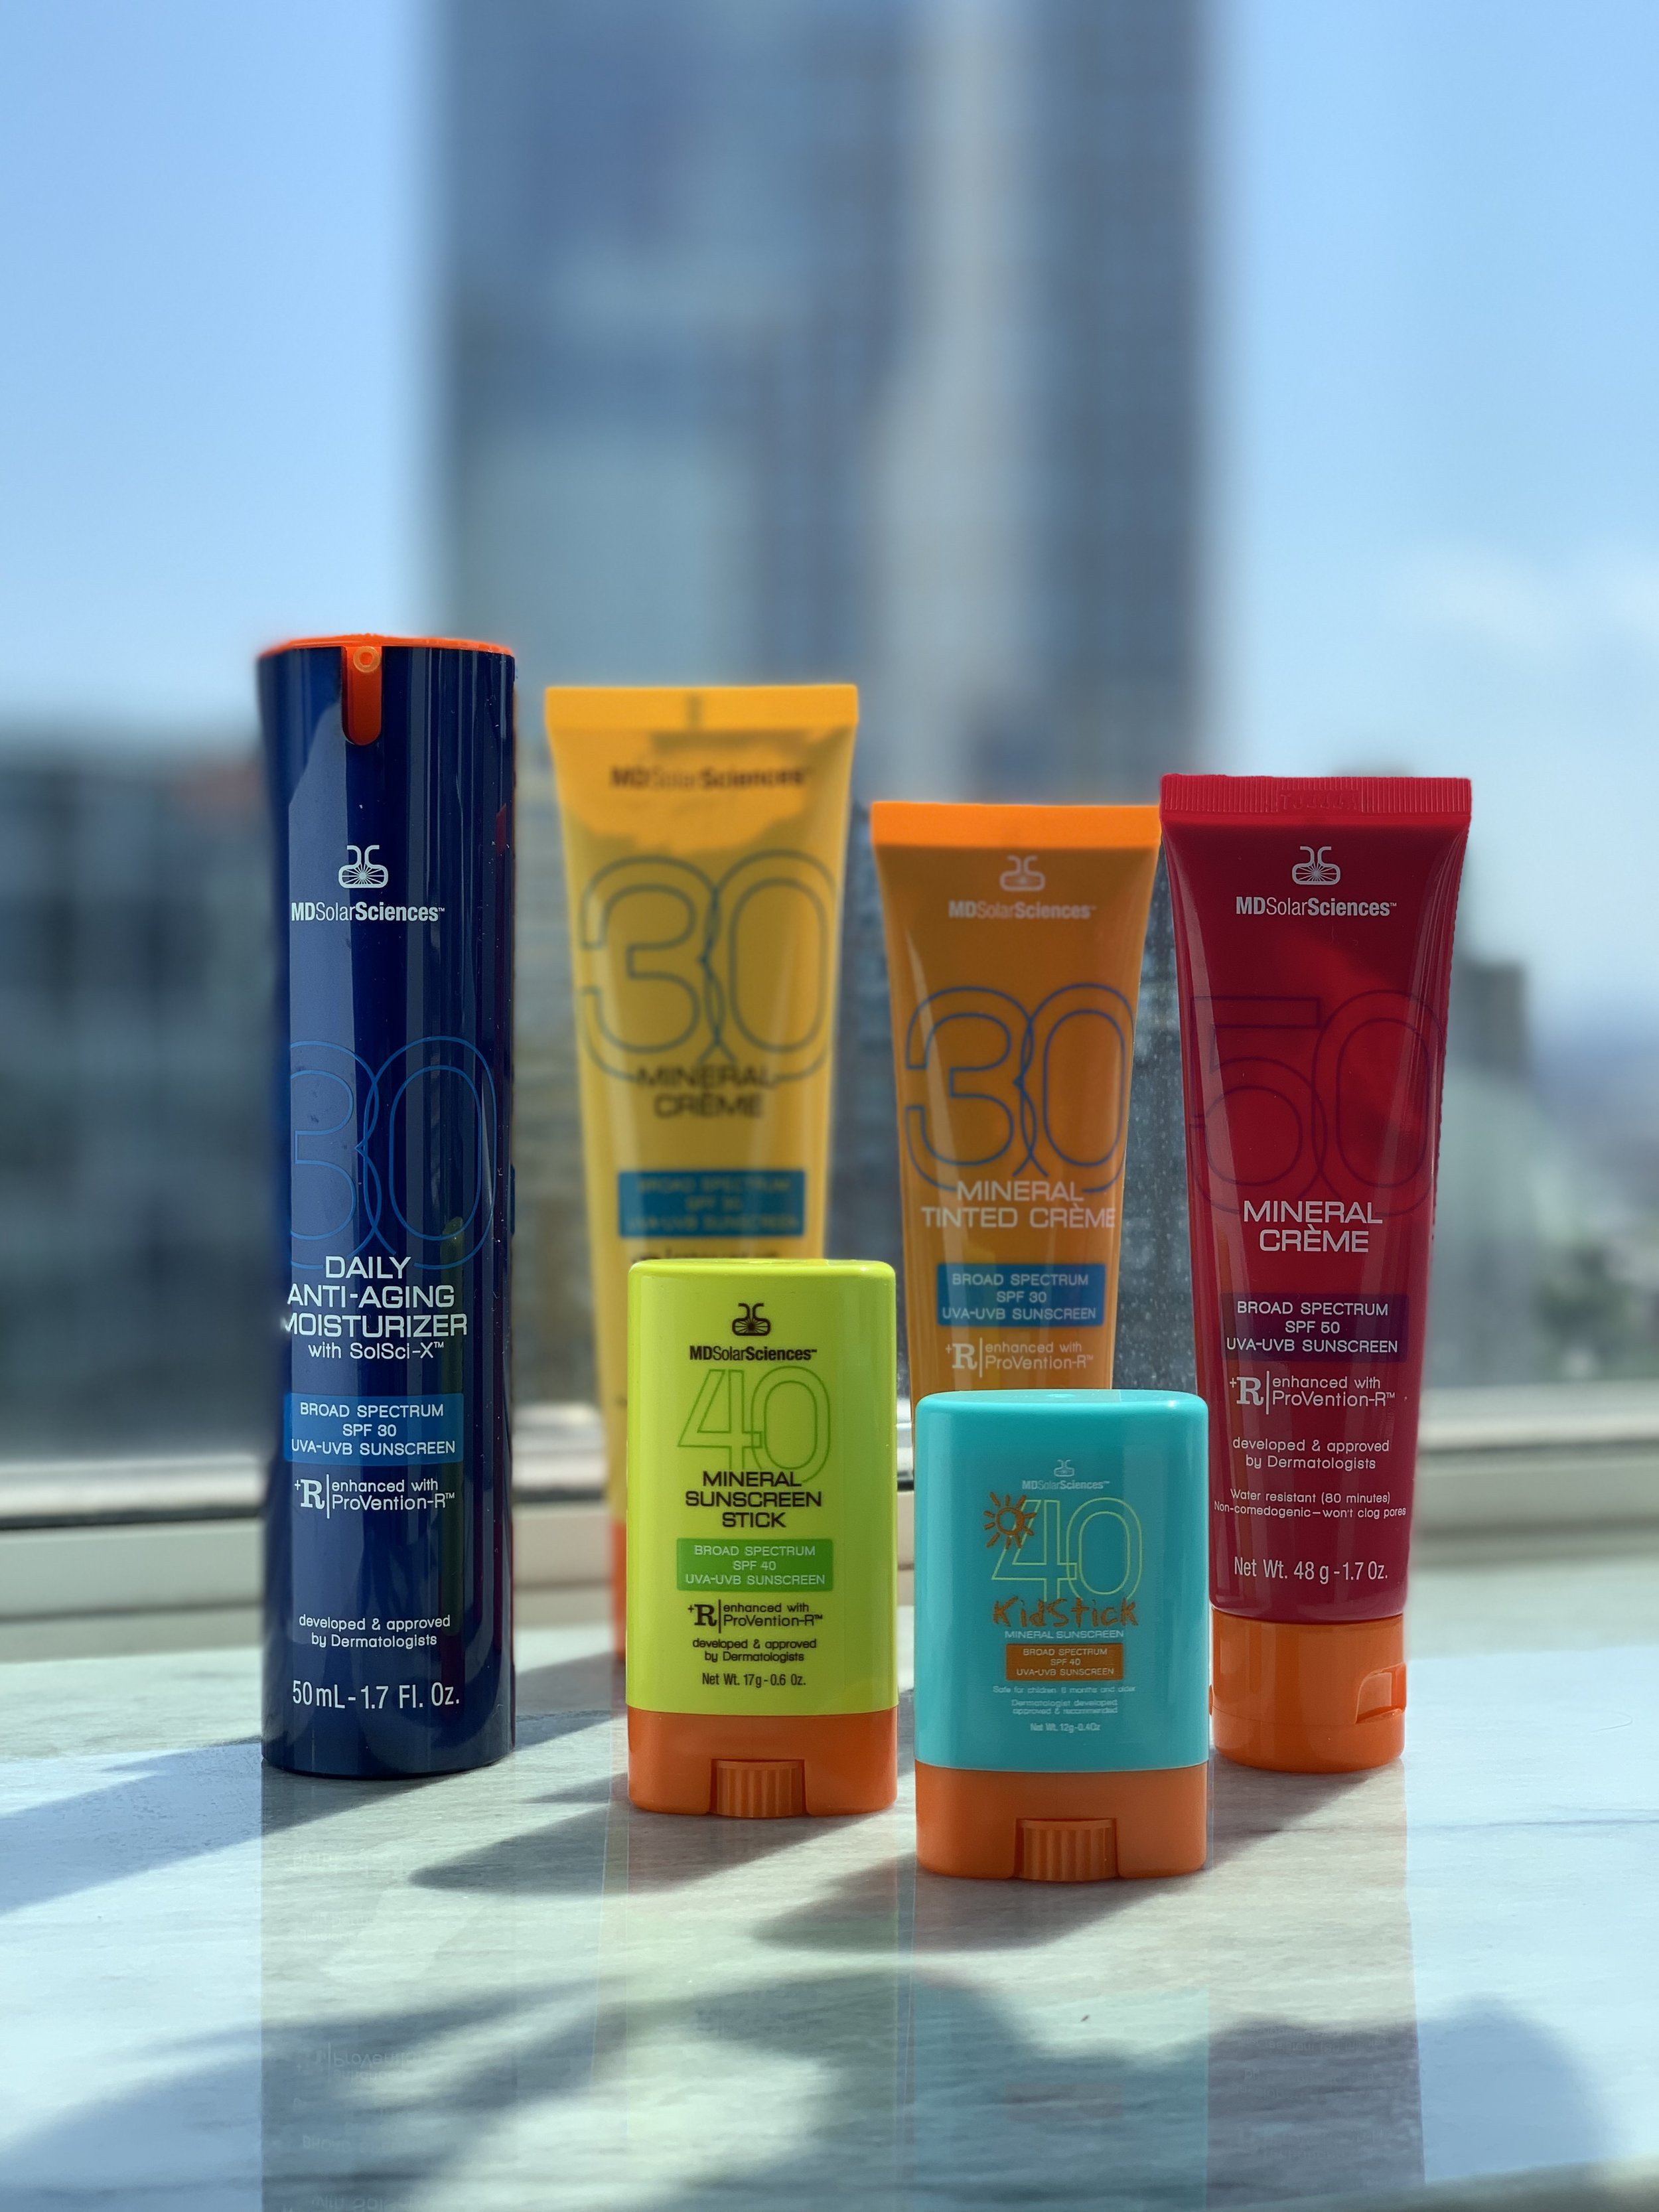 Use code  SKINCARMA20  to receive 20% off all MDSolarSciences sunscreen products!